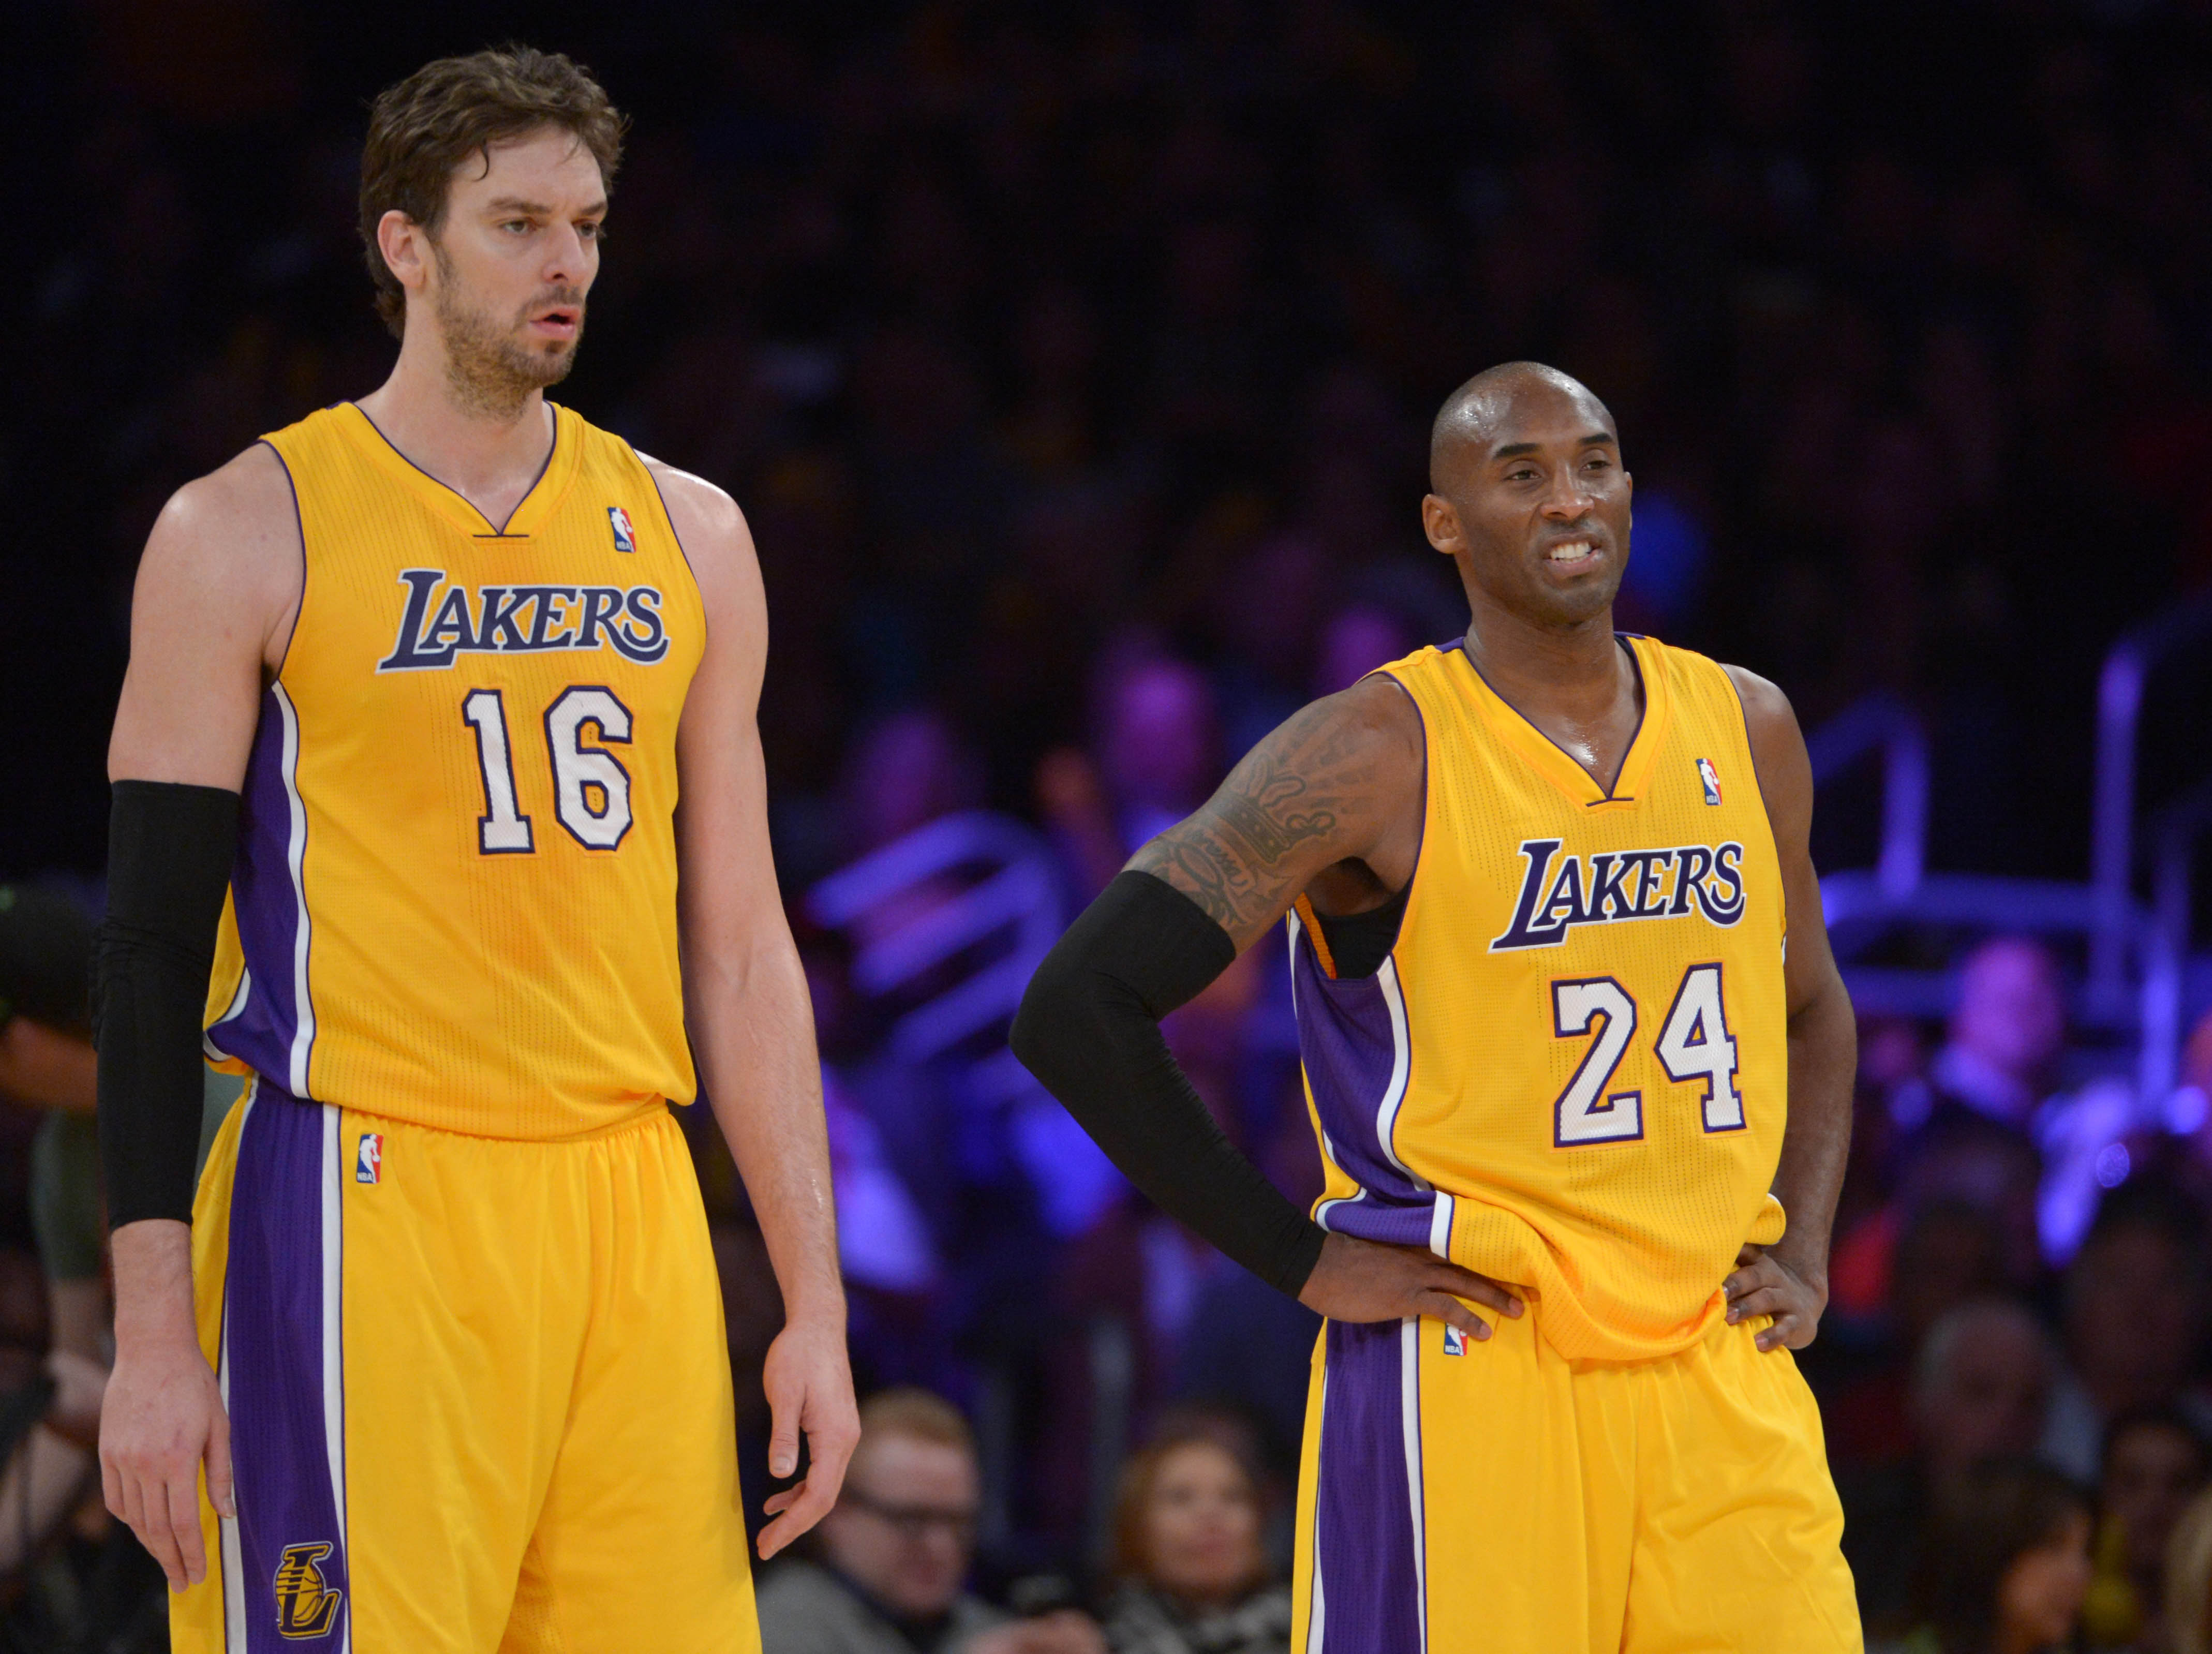 Dec 10, 2013; Los Angeles, CA, USA; Los Angeles Lakers forward Pau Gasol (16) and guard Kobe Bryant (24) react during the game against the Phoenix Suns at Staples Center. The Suns defeated the Lakers 114-108.